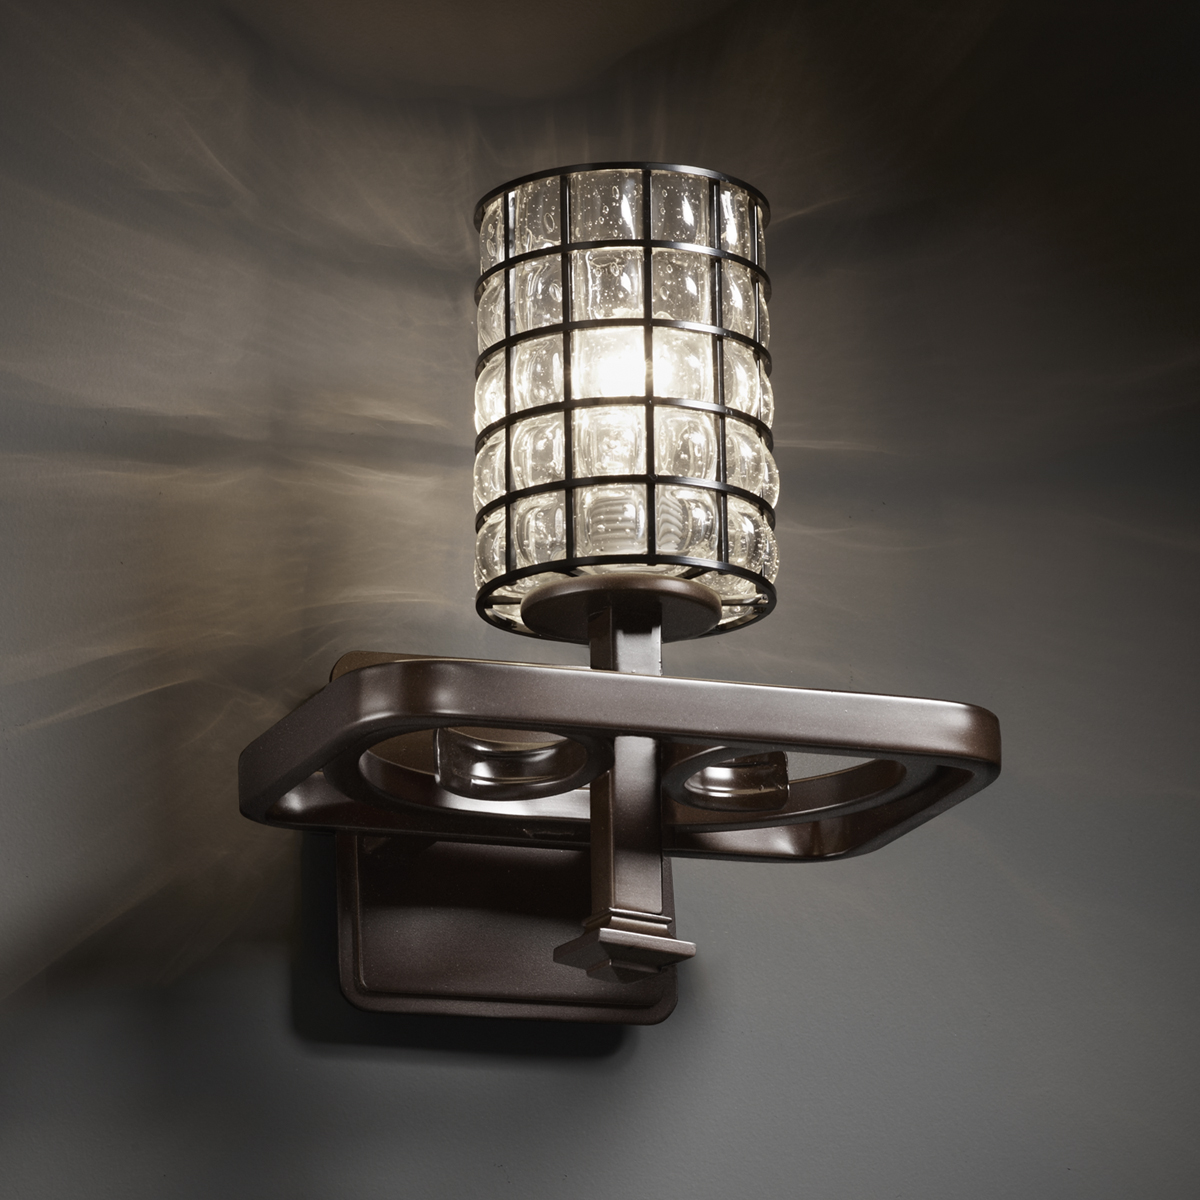 Wall Sconce With Wire : Justice Design (WGL-8561) Arcadia 1-Light Wall Sconce from the Wire Glass Collection